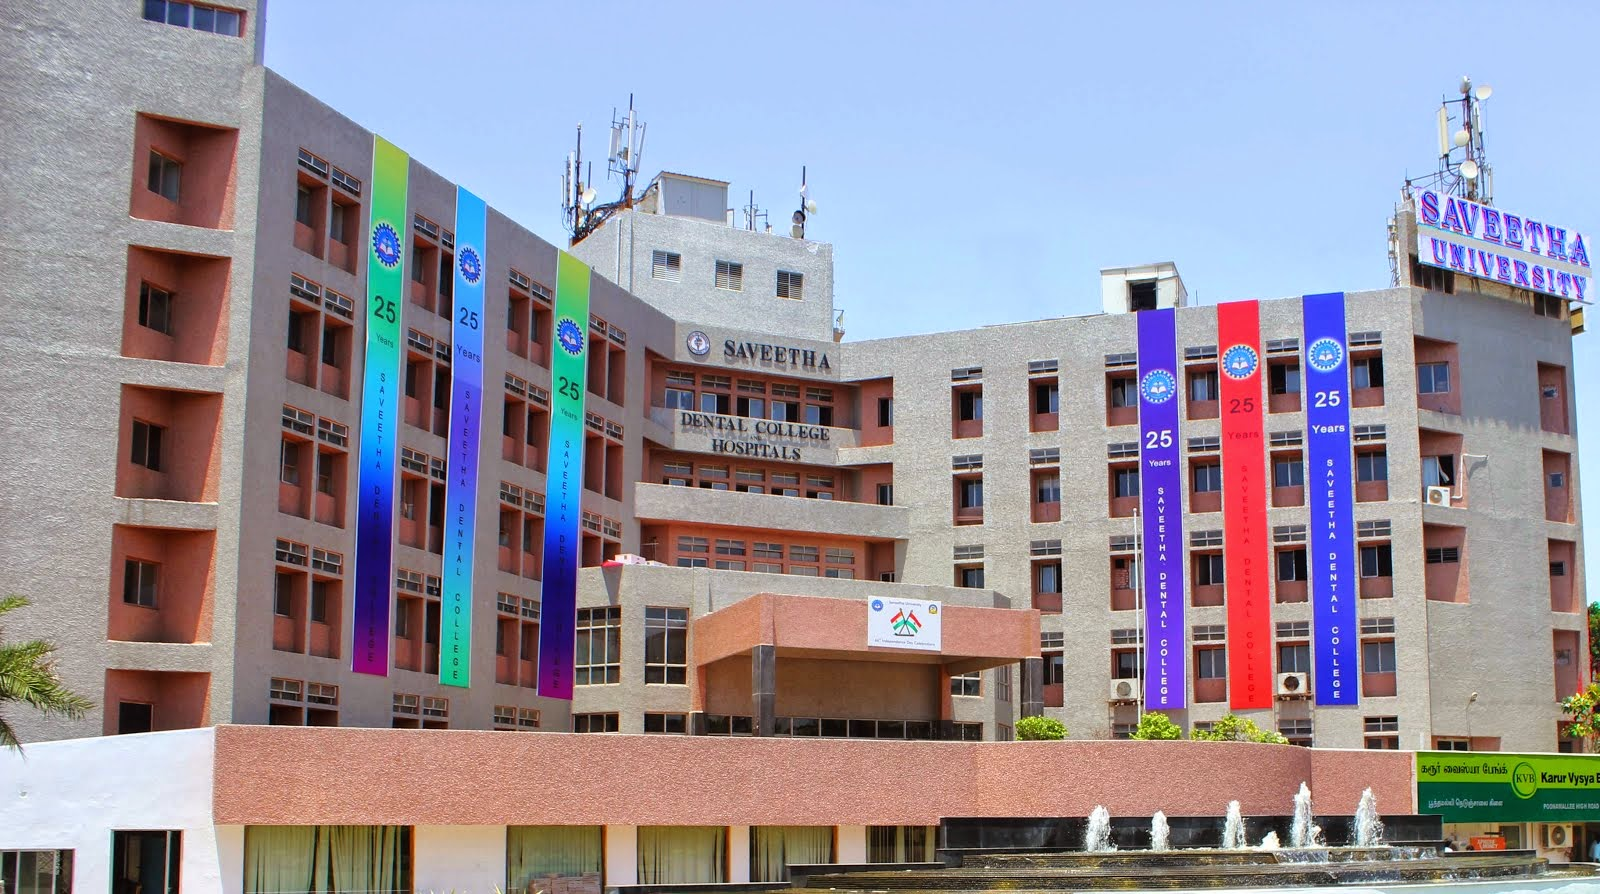 Saveetha college of physiotherapy, chennai